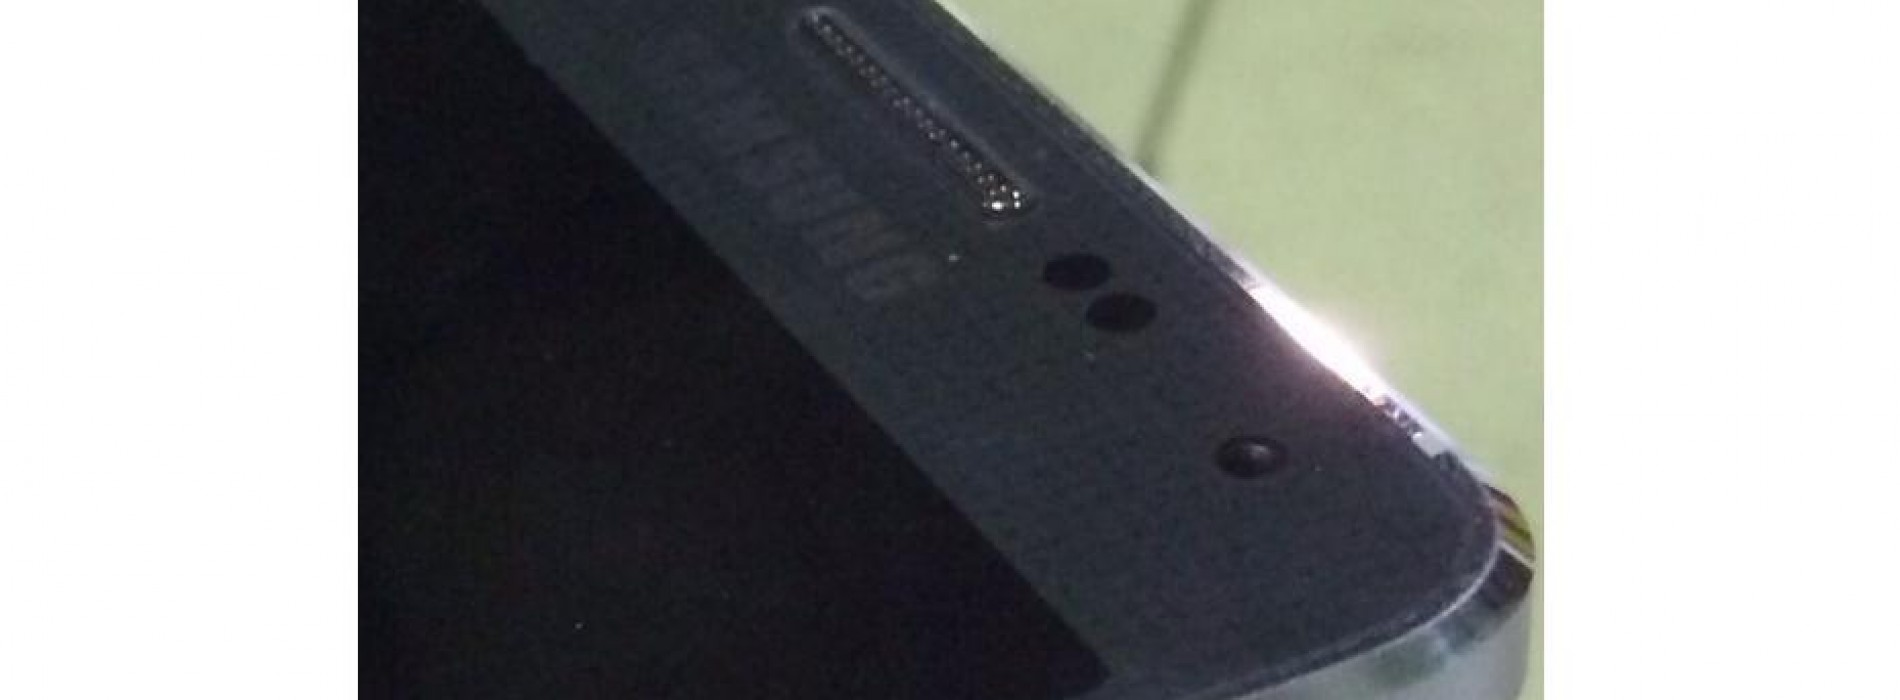 Galaxy F allegedly leaks in a first live photo